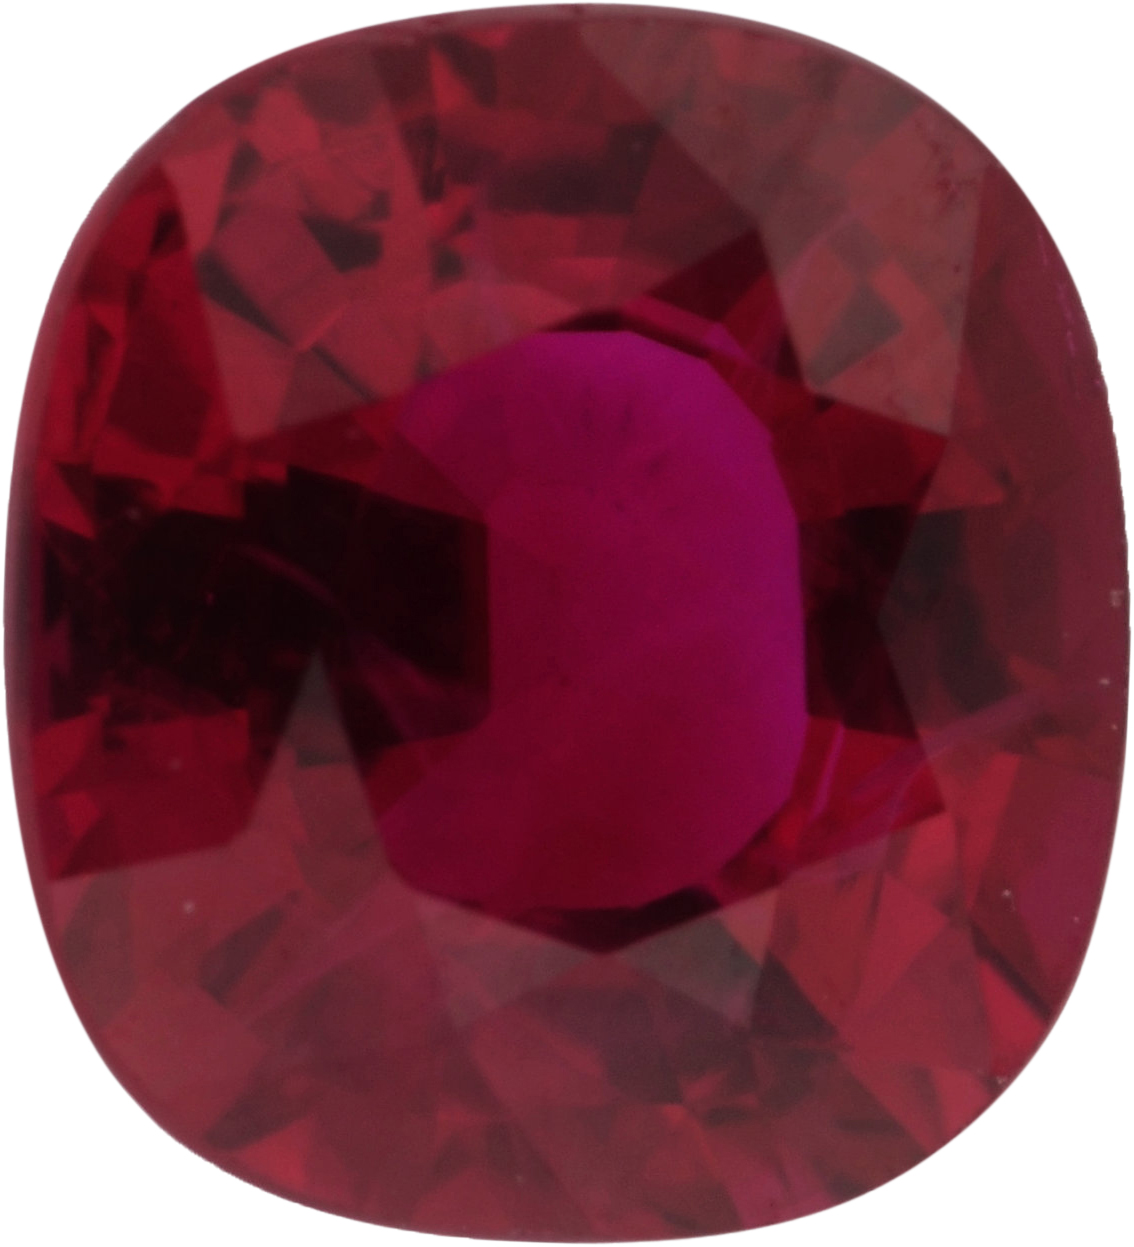 1.05 carats Ruby Loose Gemstone in Antique Cushion Cut, Strong Red, 5.97 x 5.49 mm